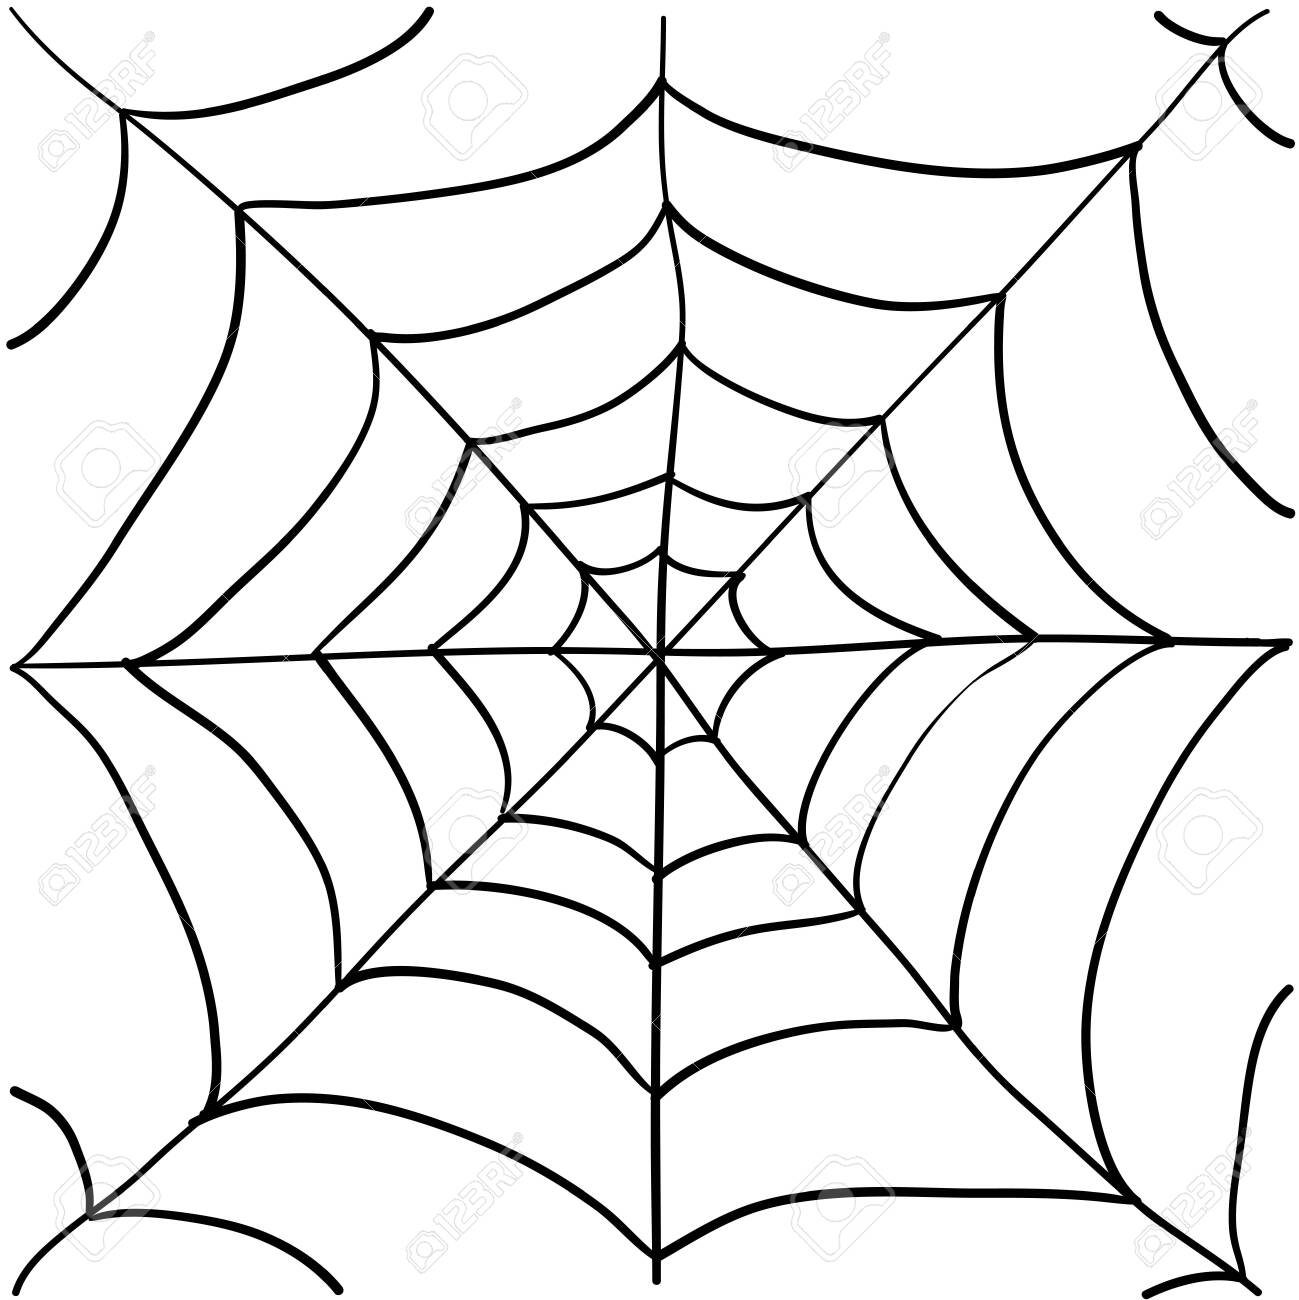 spider web illustration with handddrawn doodle style - 136790098